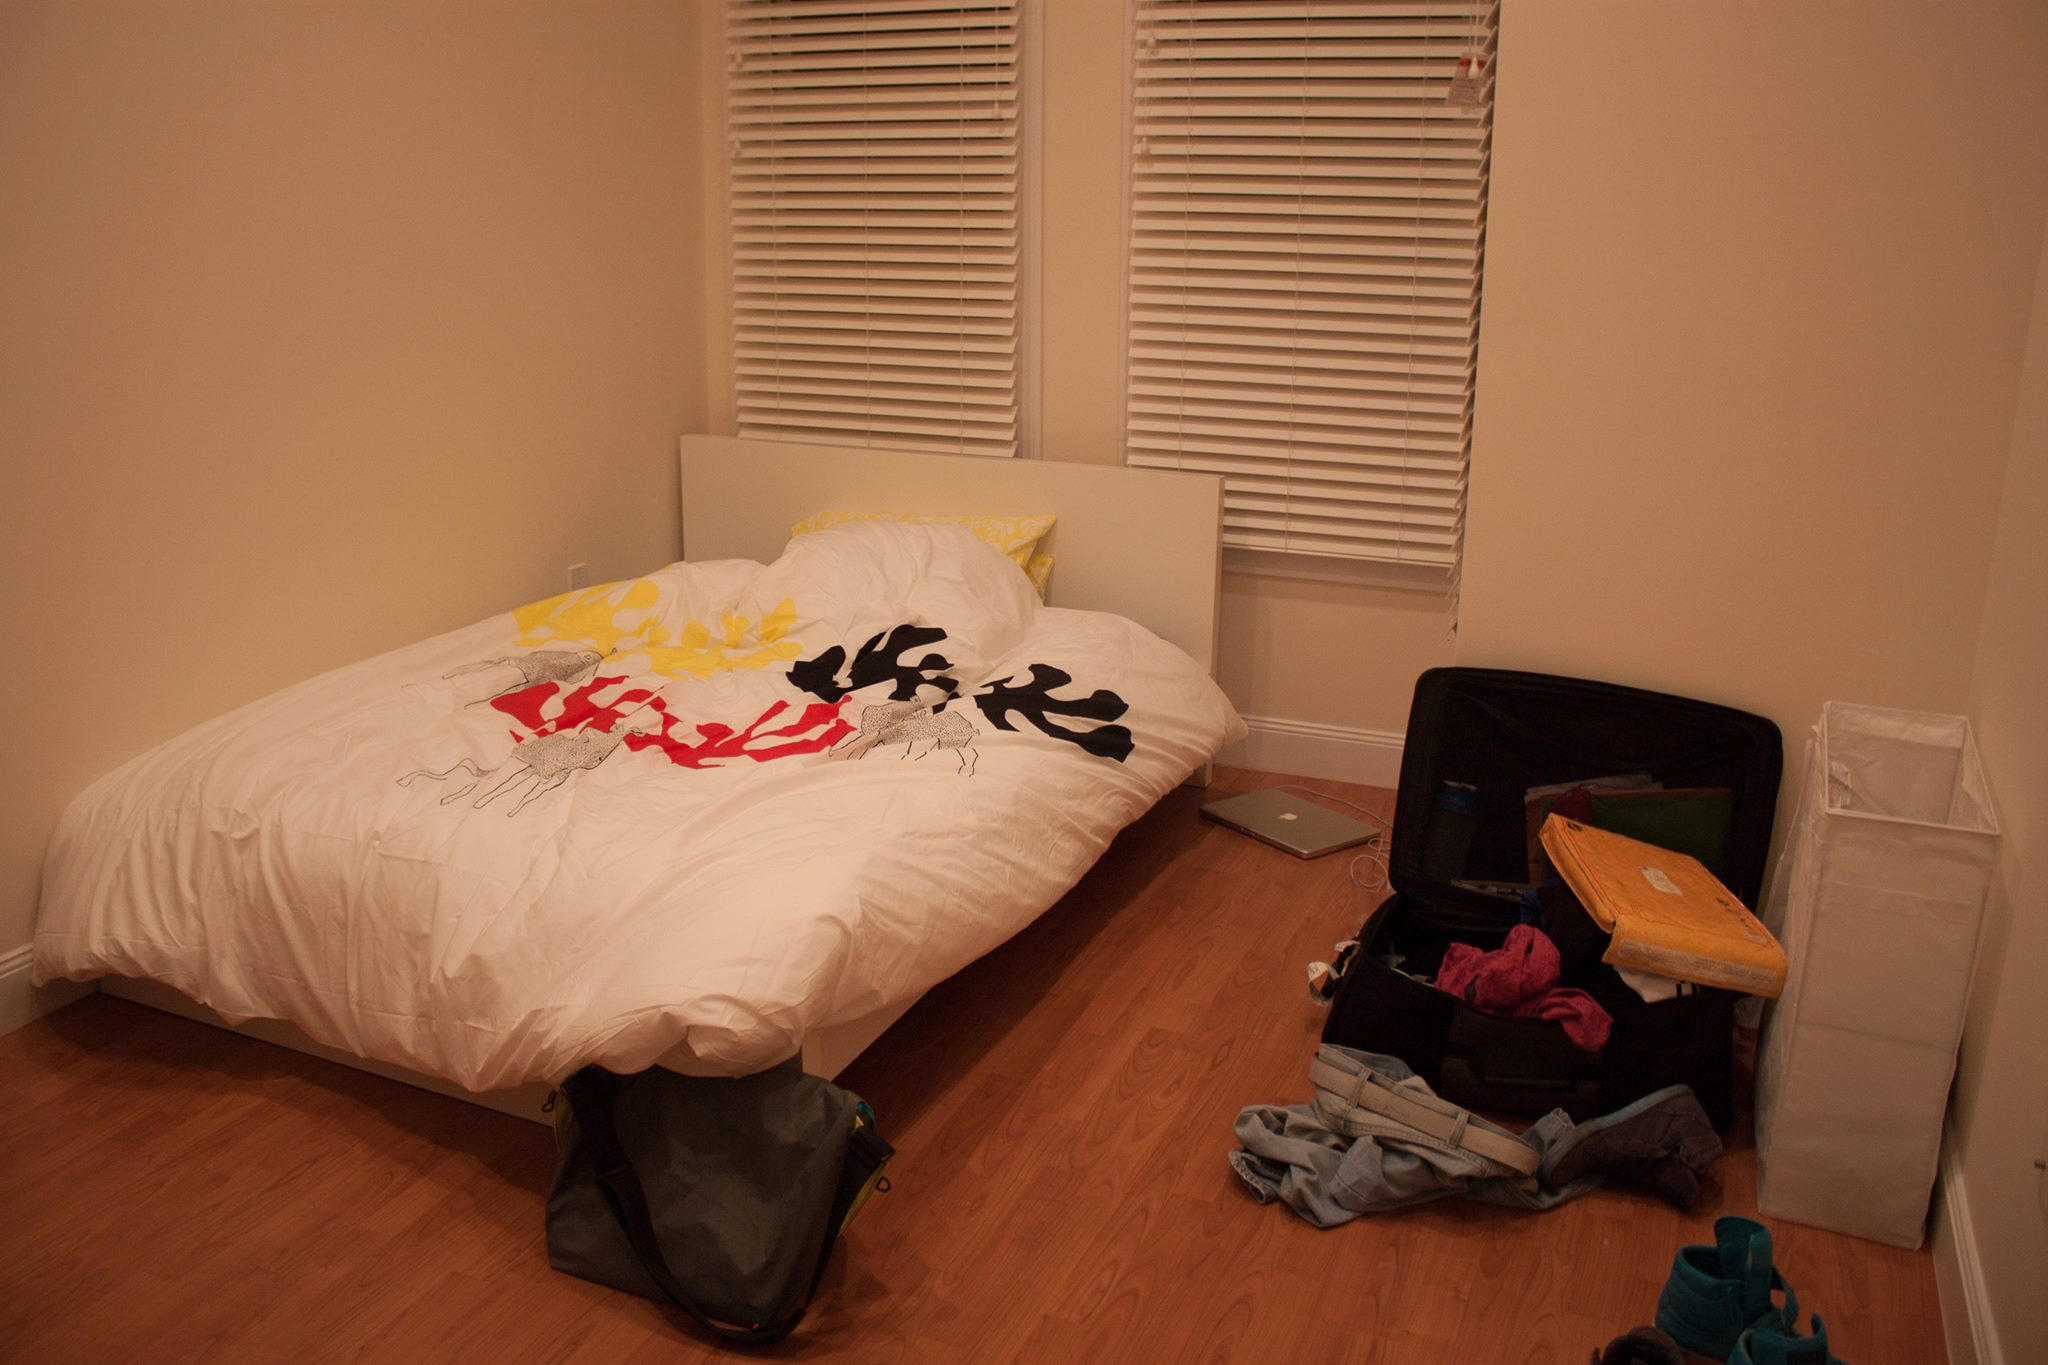 My rather bare bedroom